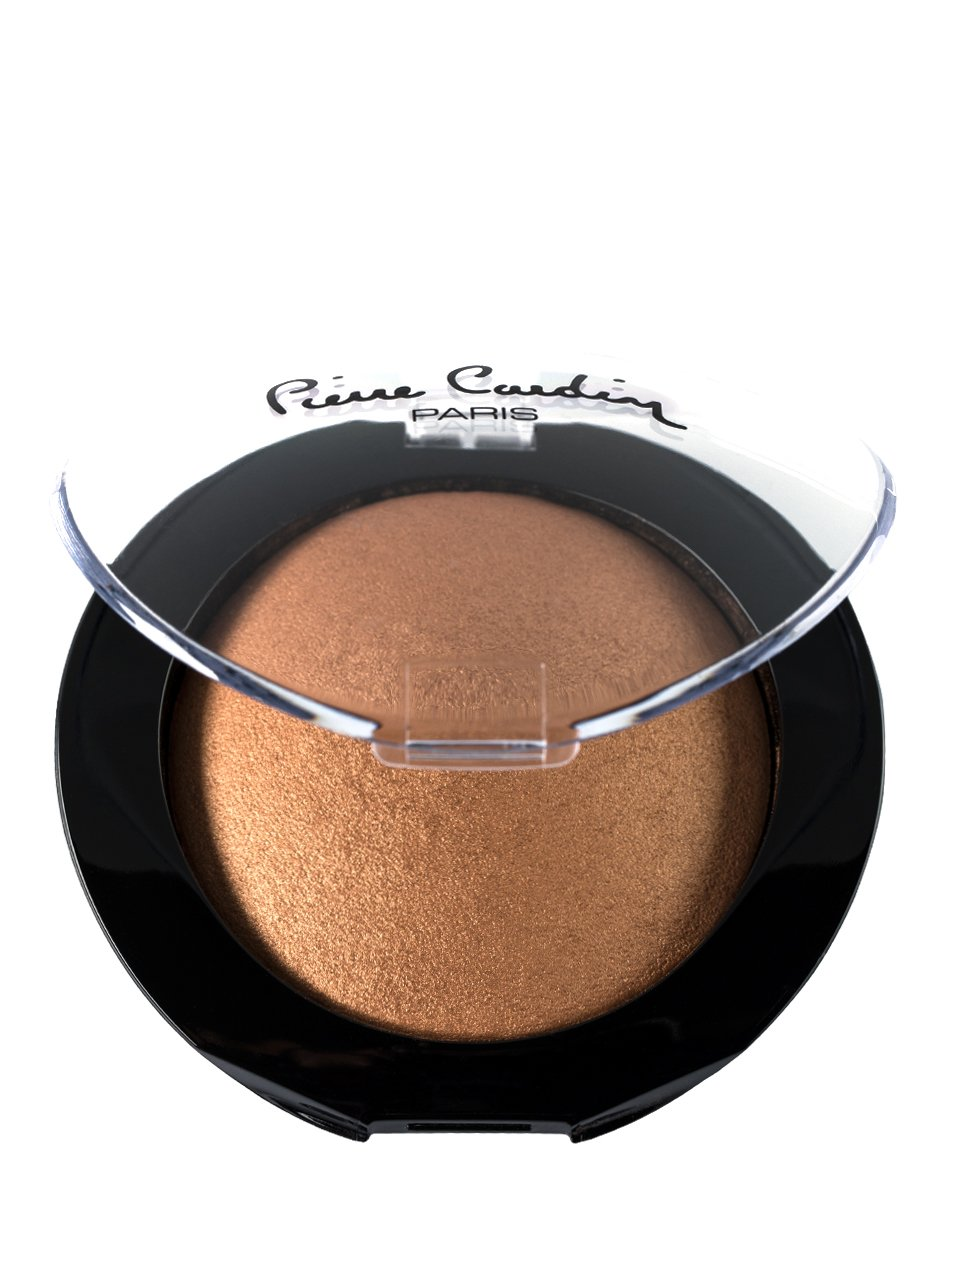 Pierre Cardin Paris Terracotta Bronzer Baked Powder, Bronze, 0.28 oz, 8 g